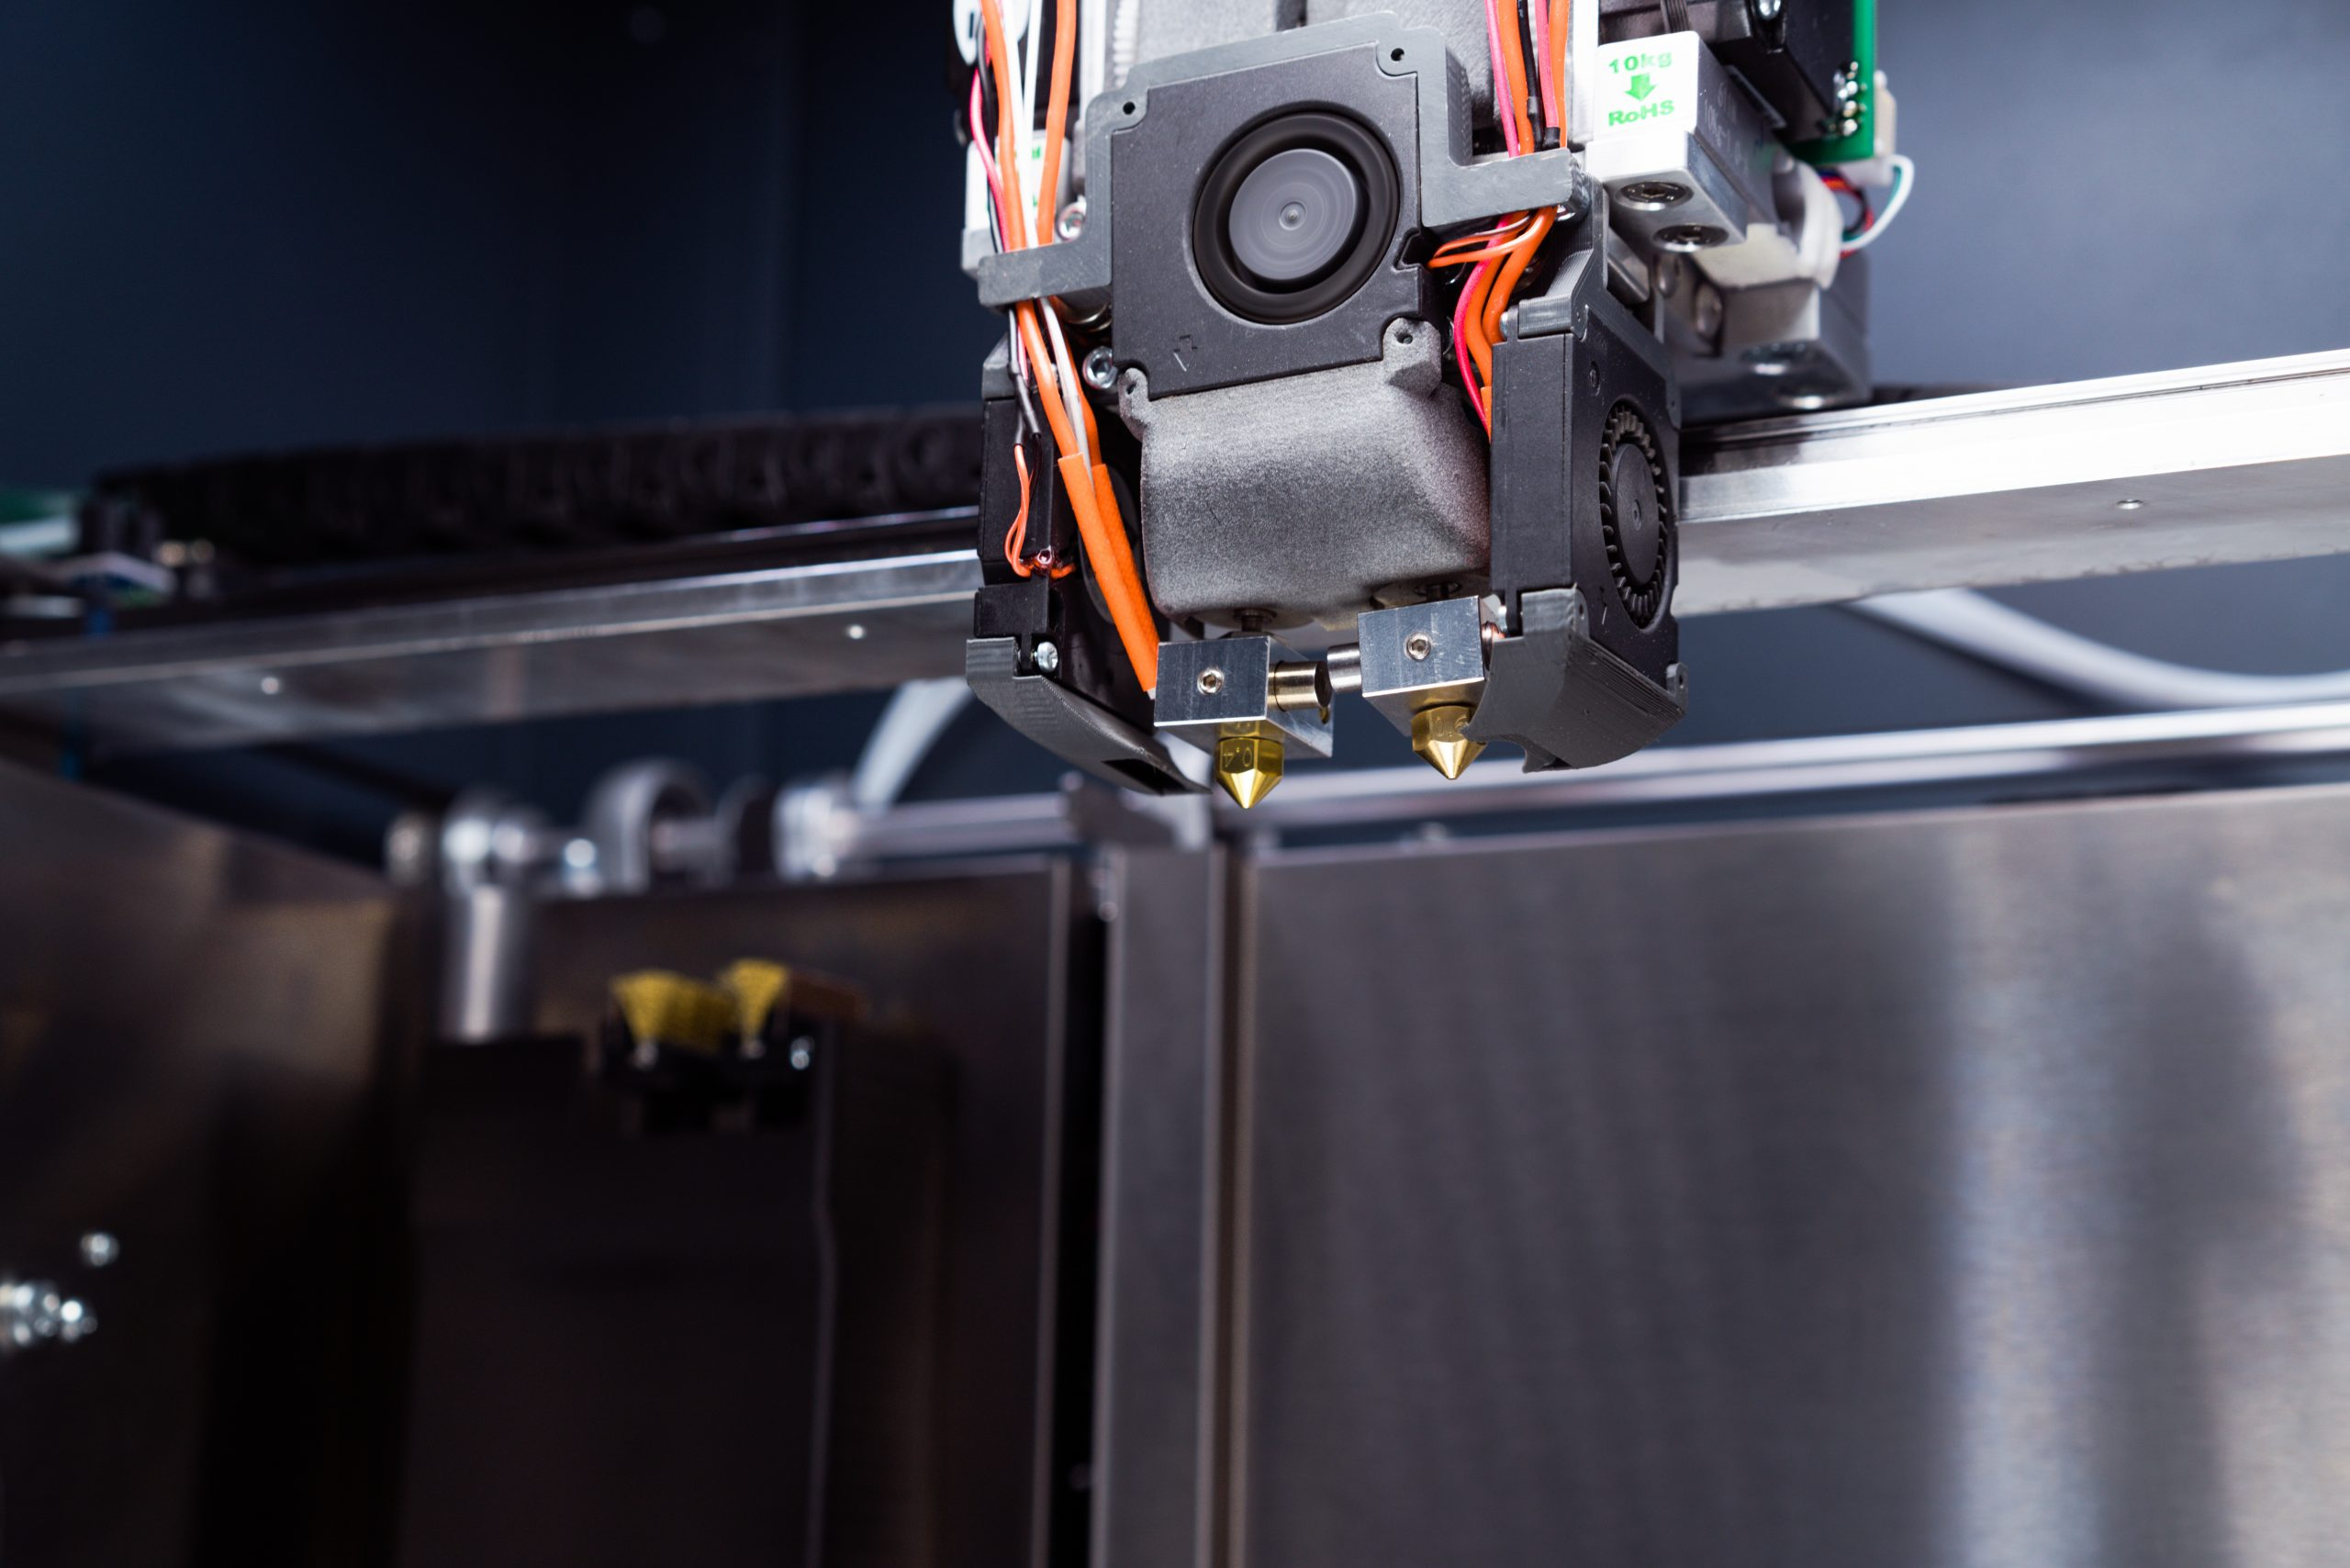 The Zmorph i500's Dual Drive Dual Extruder. Photo via Zmorph.